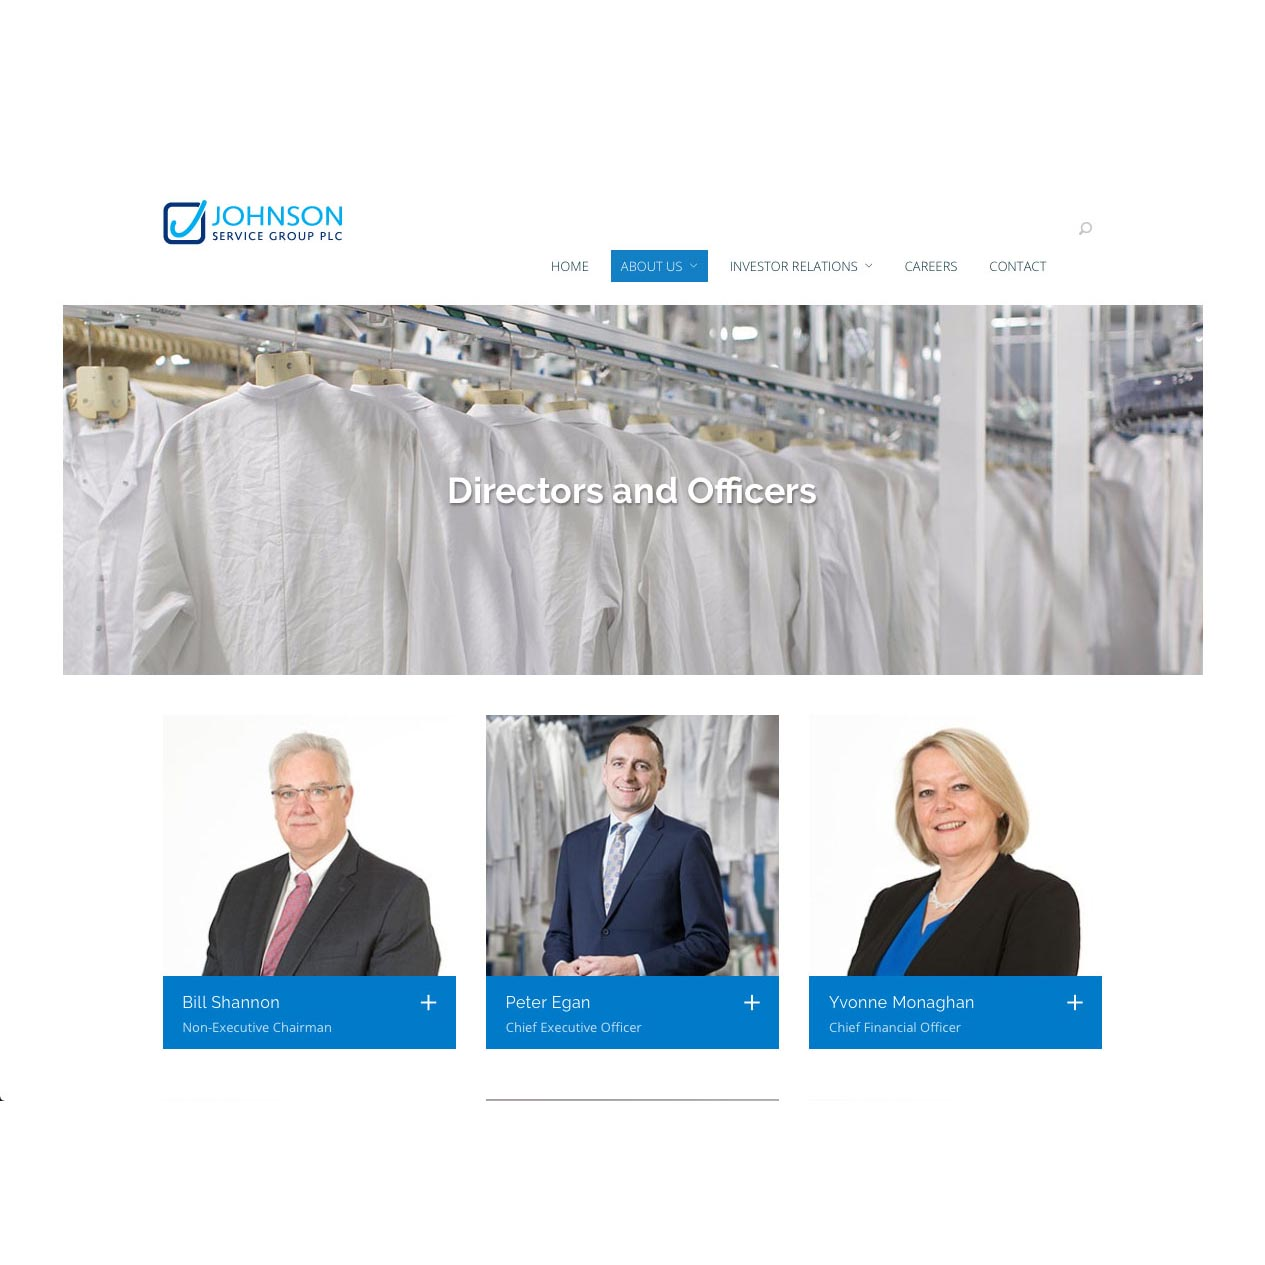 Executive portrait photography by London and Essex photographer Daniel Jones